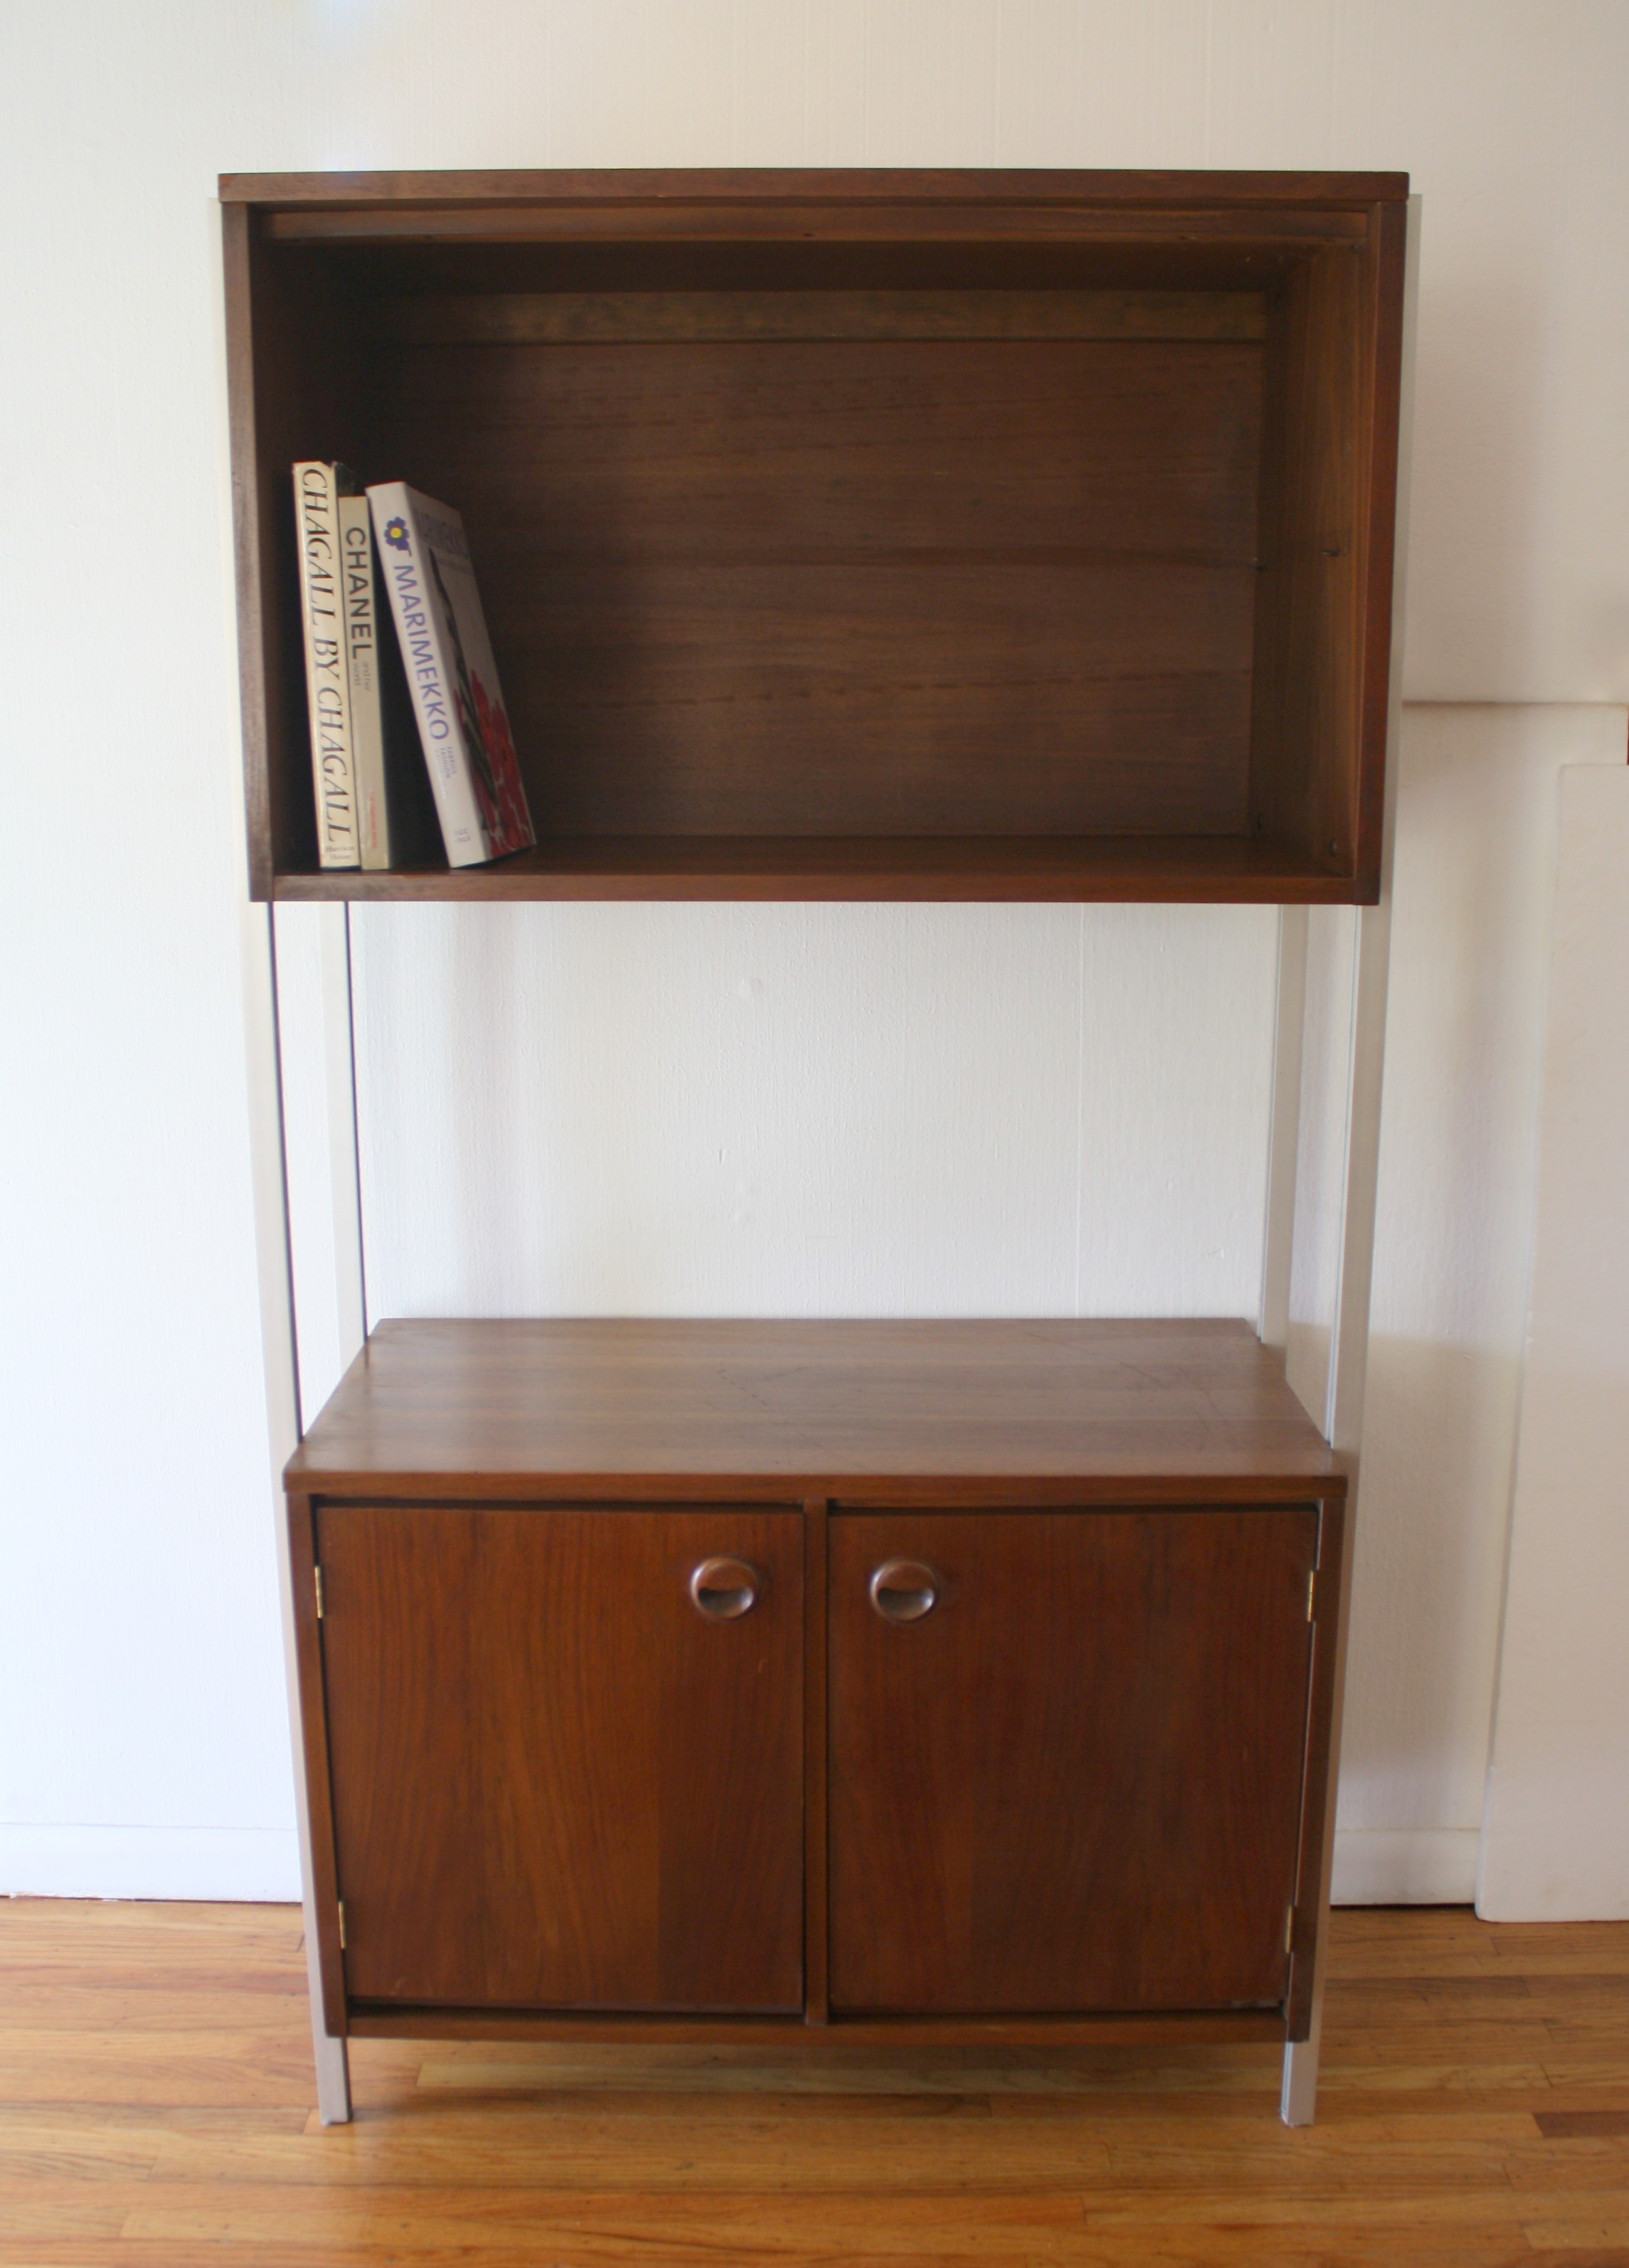 mcm-bookshelf-unit-credenza-bottom-3